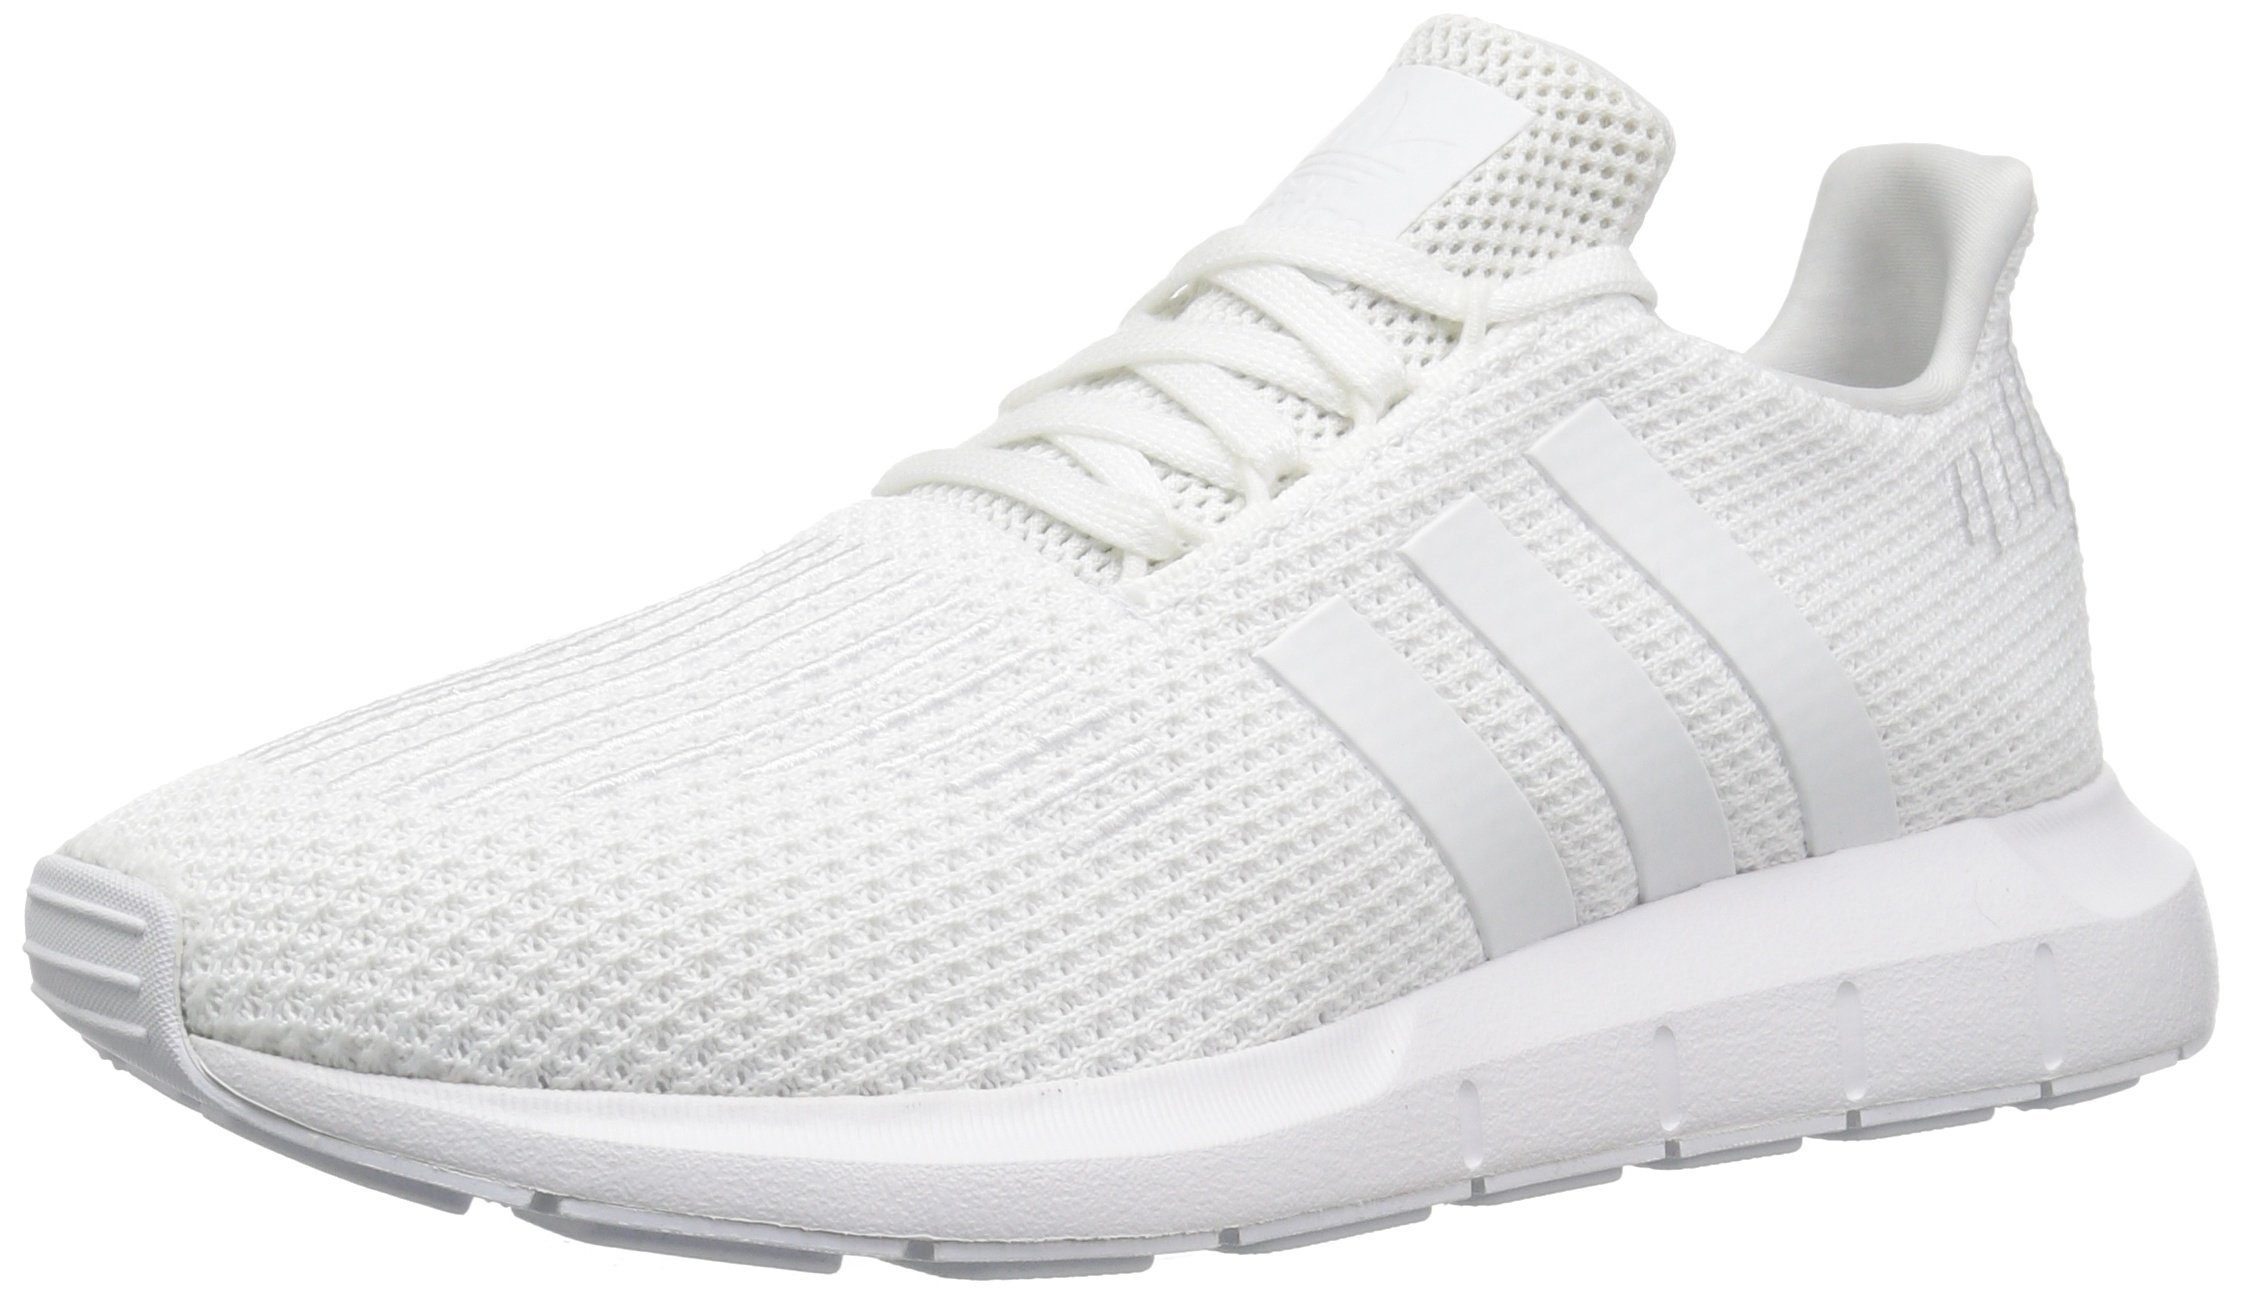 adidas Originals Women's Swift W Running-Shoes,White/White/White,6.5 M US by adidas Originals